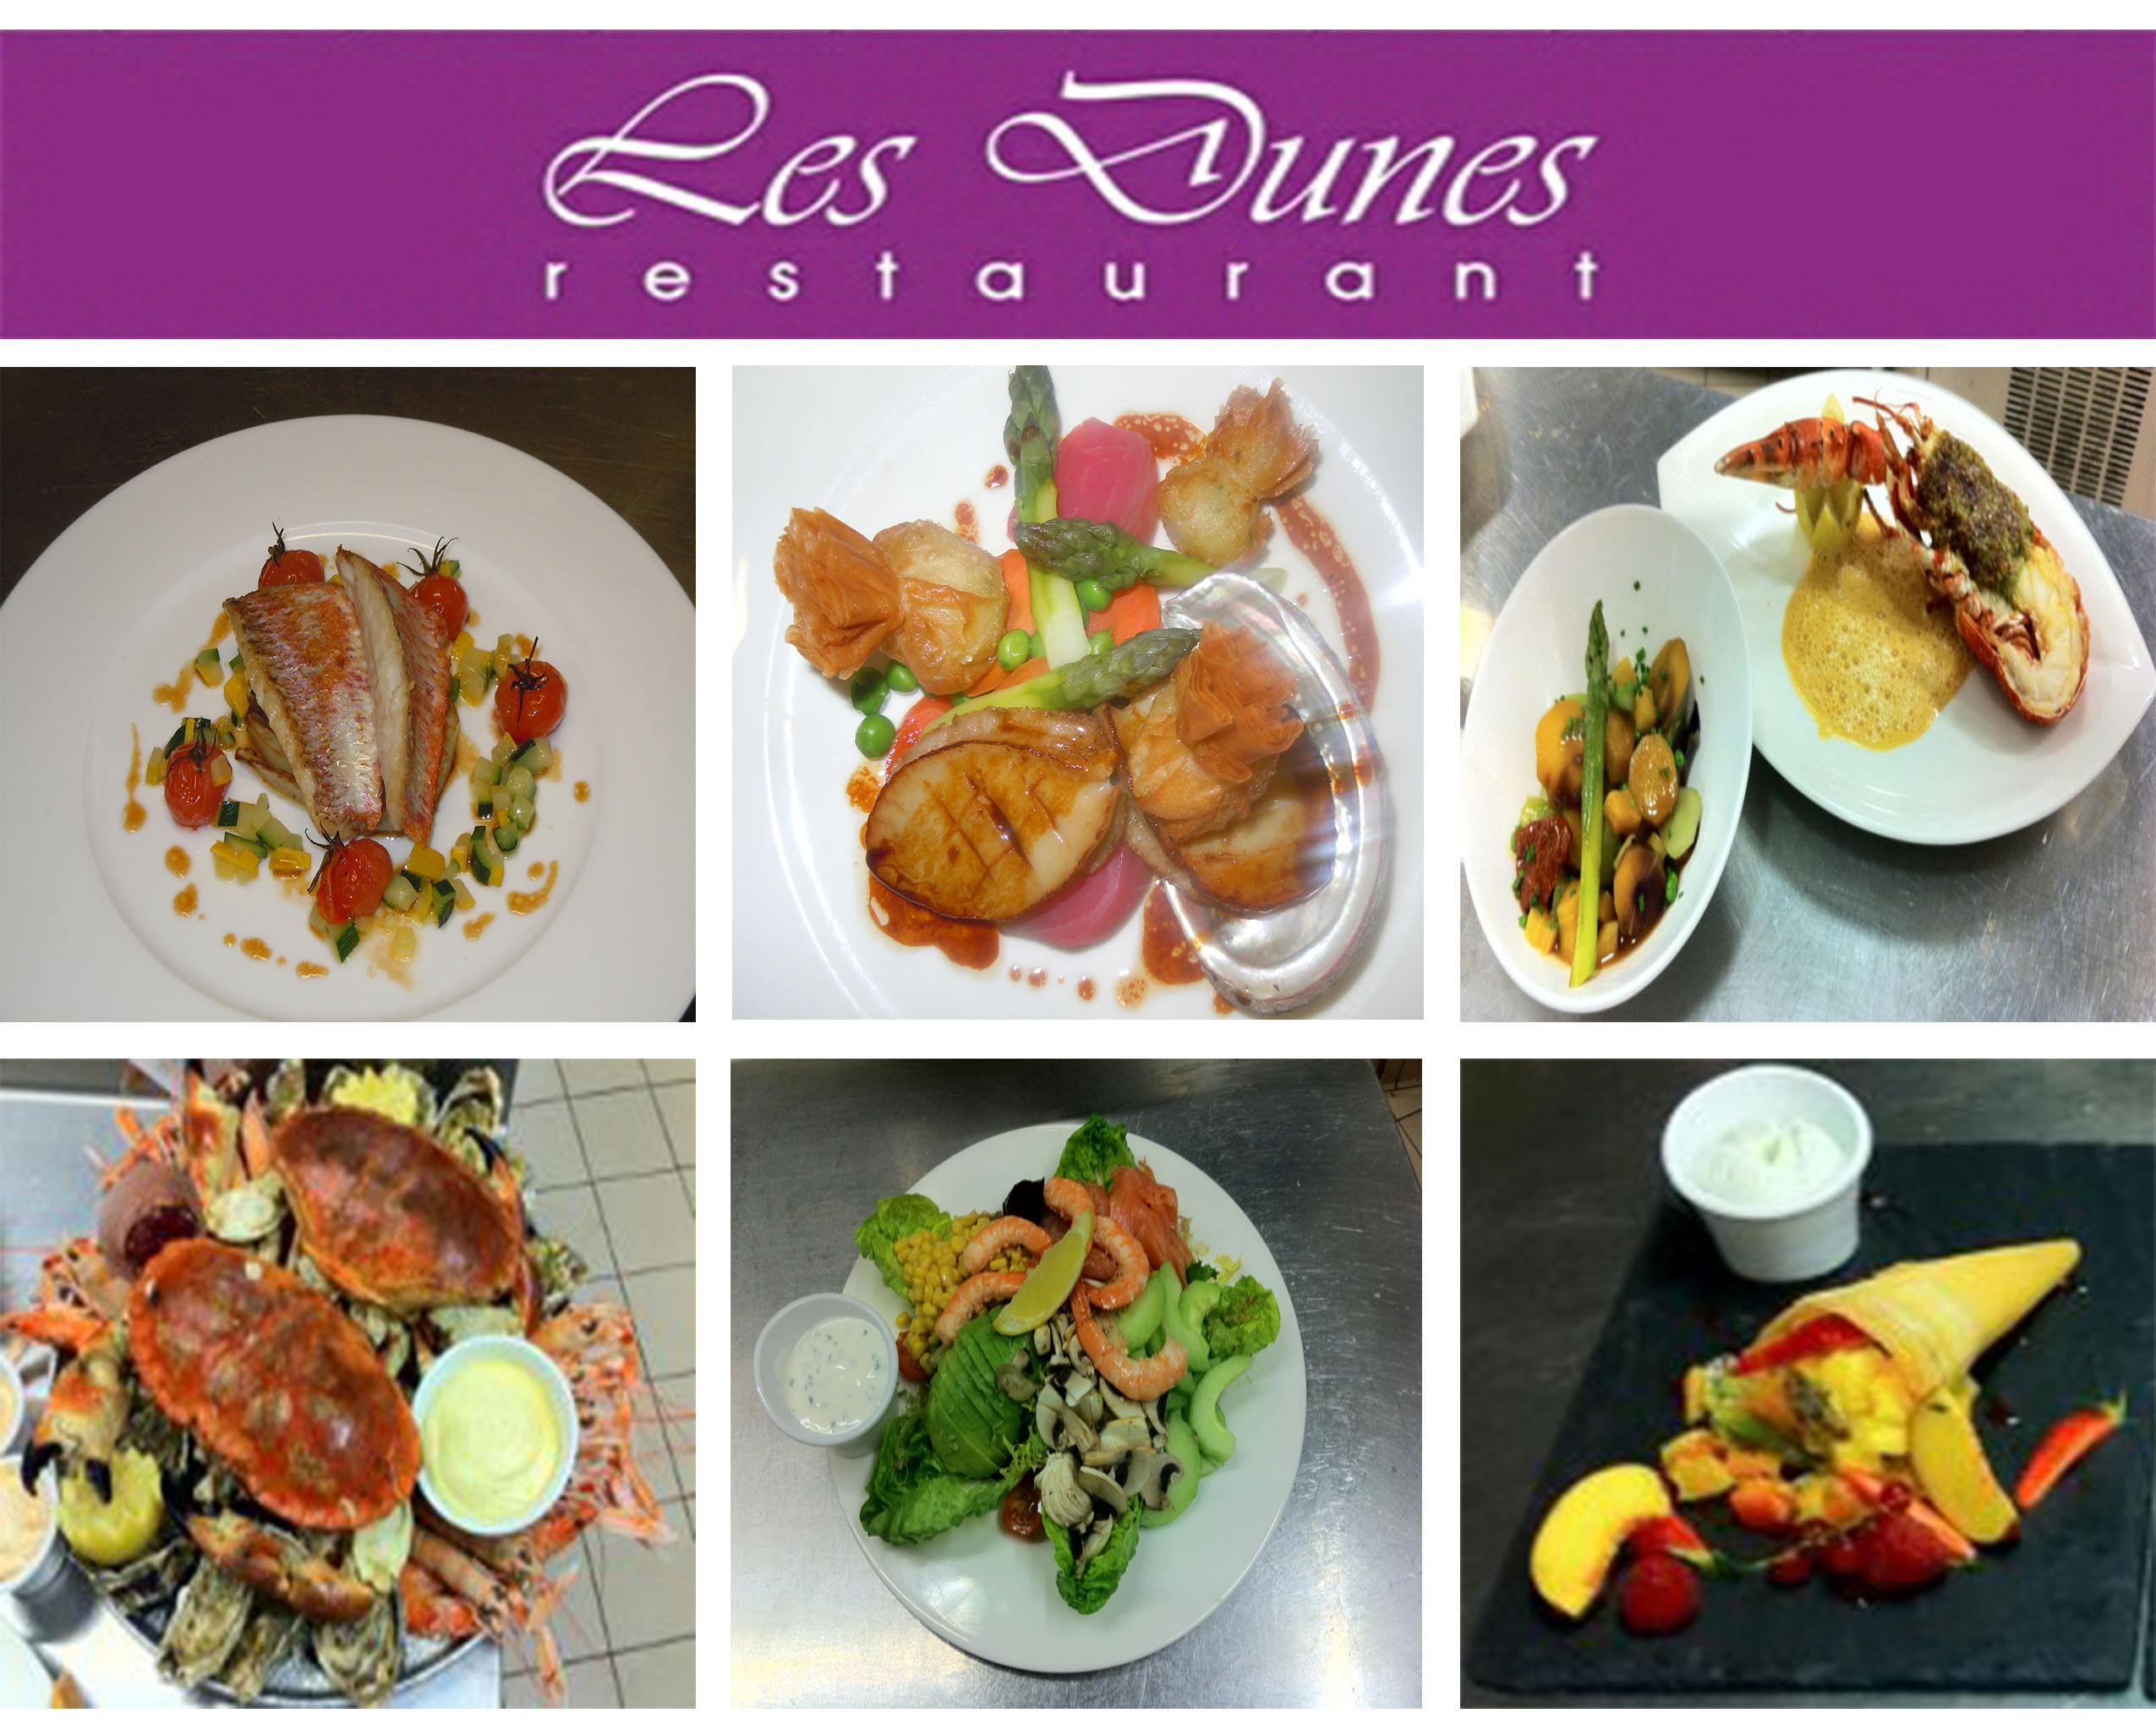 les dunes#http://cdt22.media.tourinsoft.eu/upload/resto-les-dunes900pix.jpg